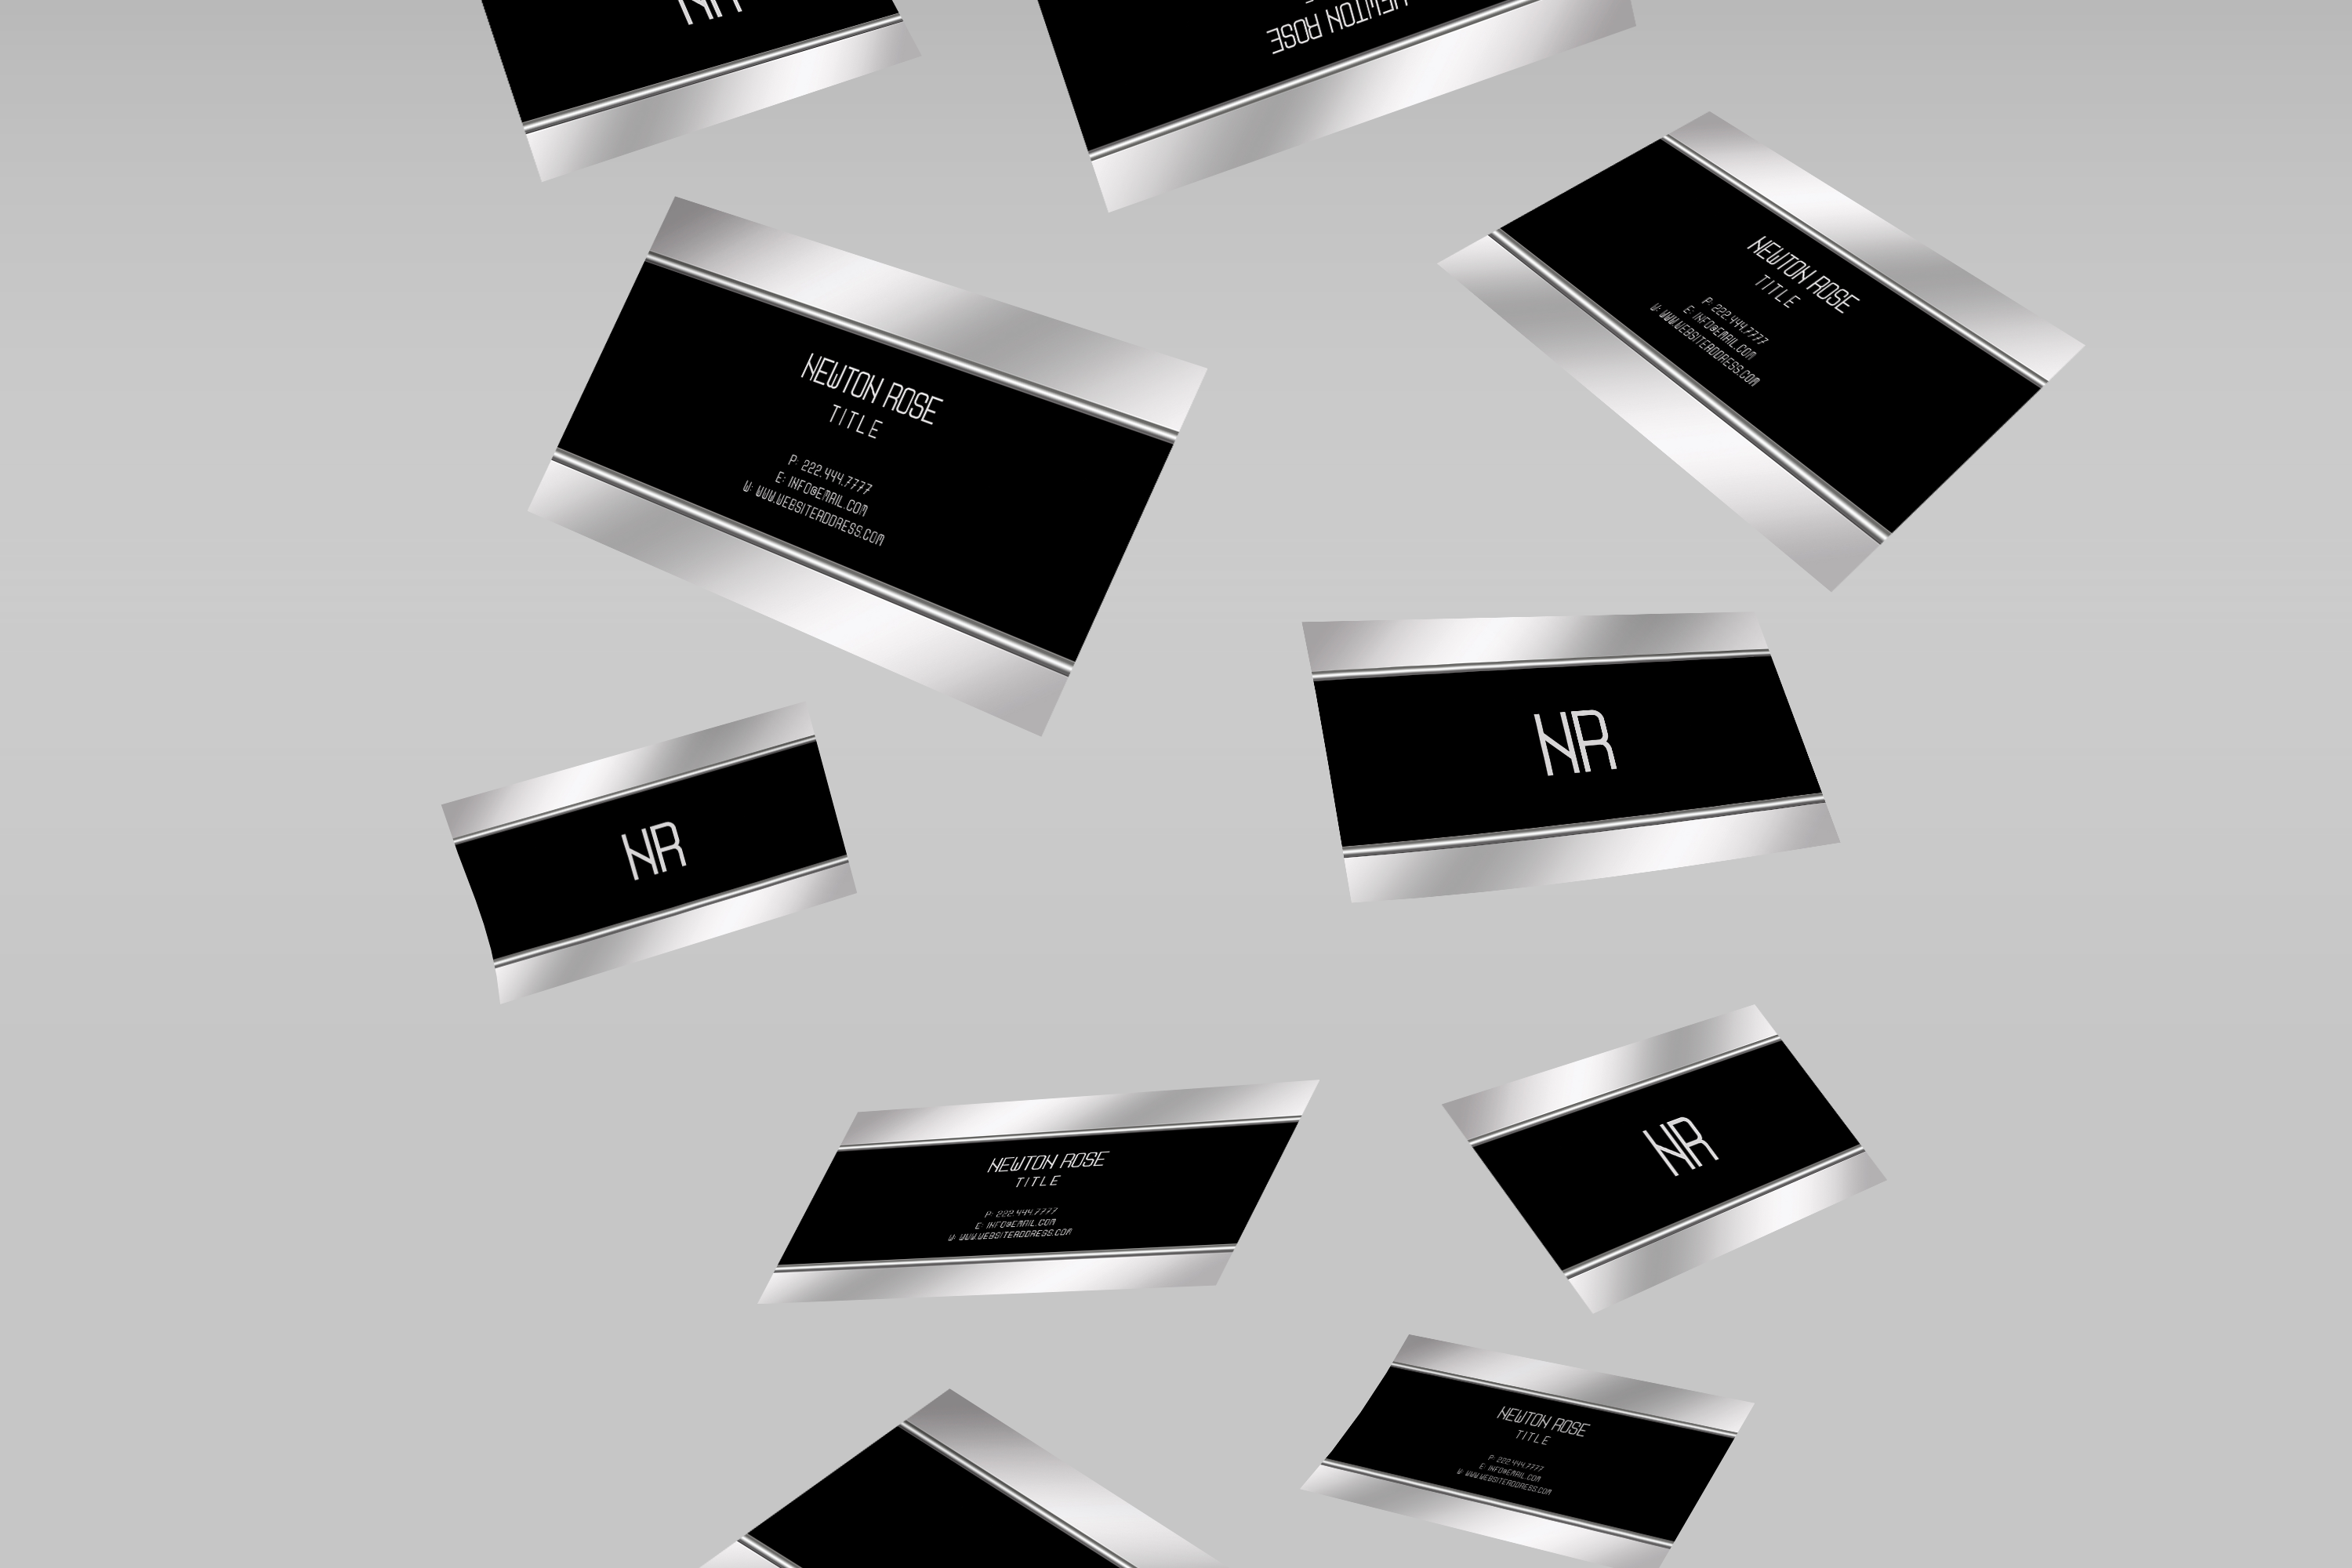 Silver metal finish business card  example image 2